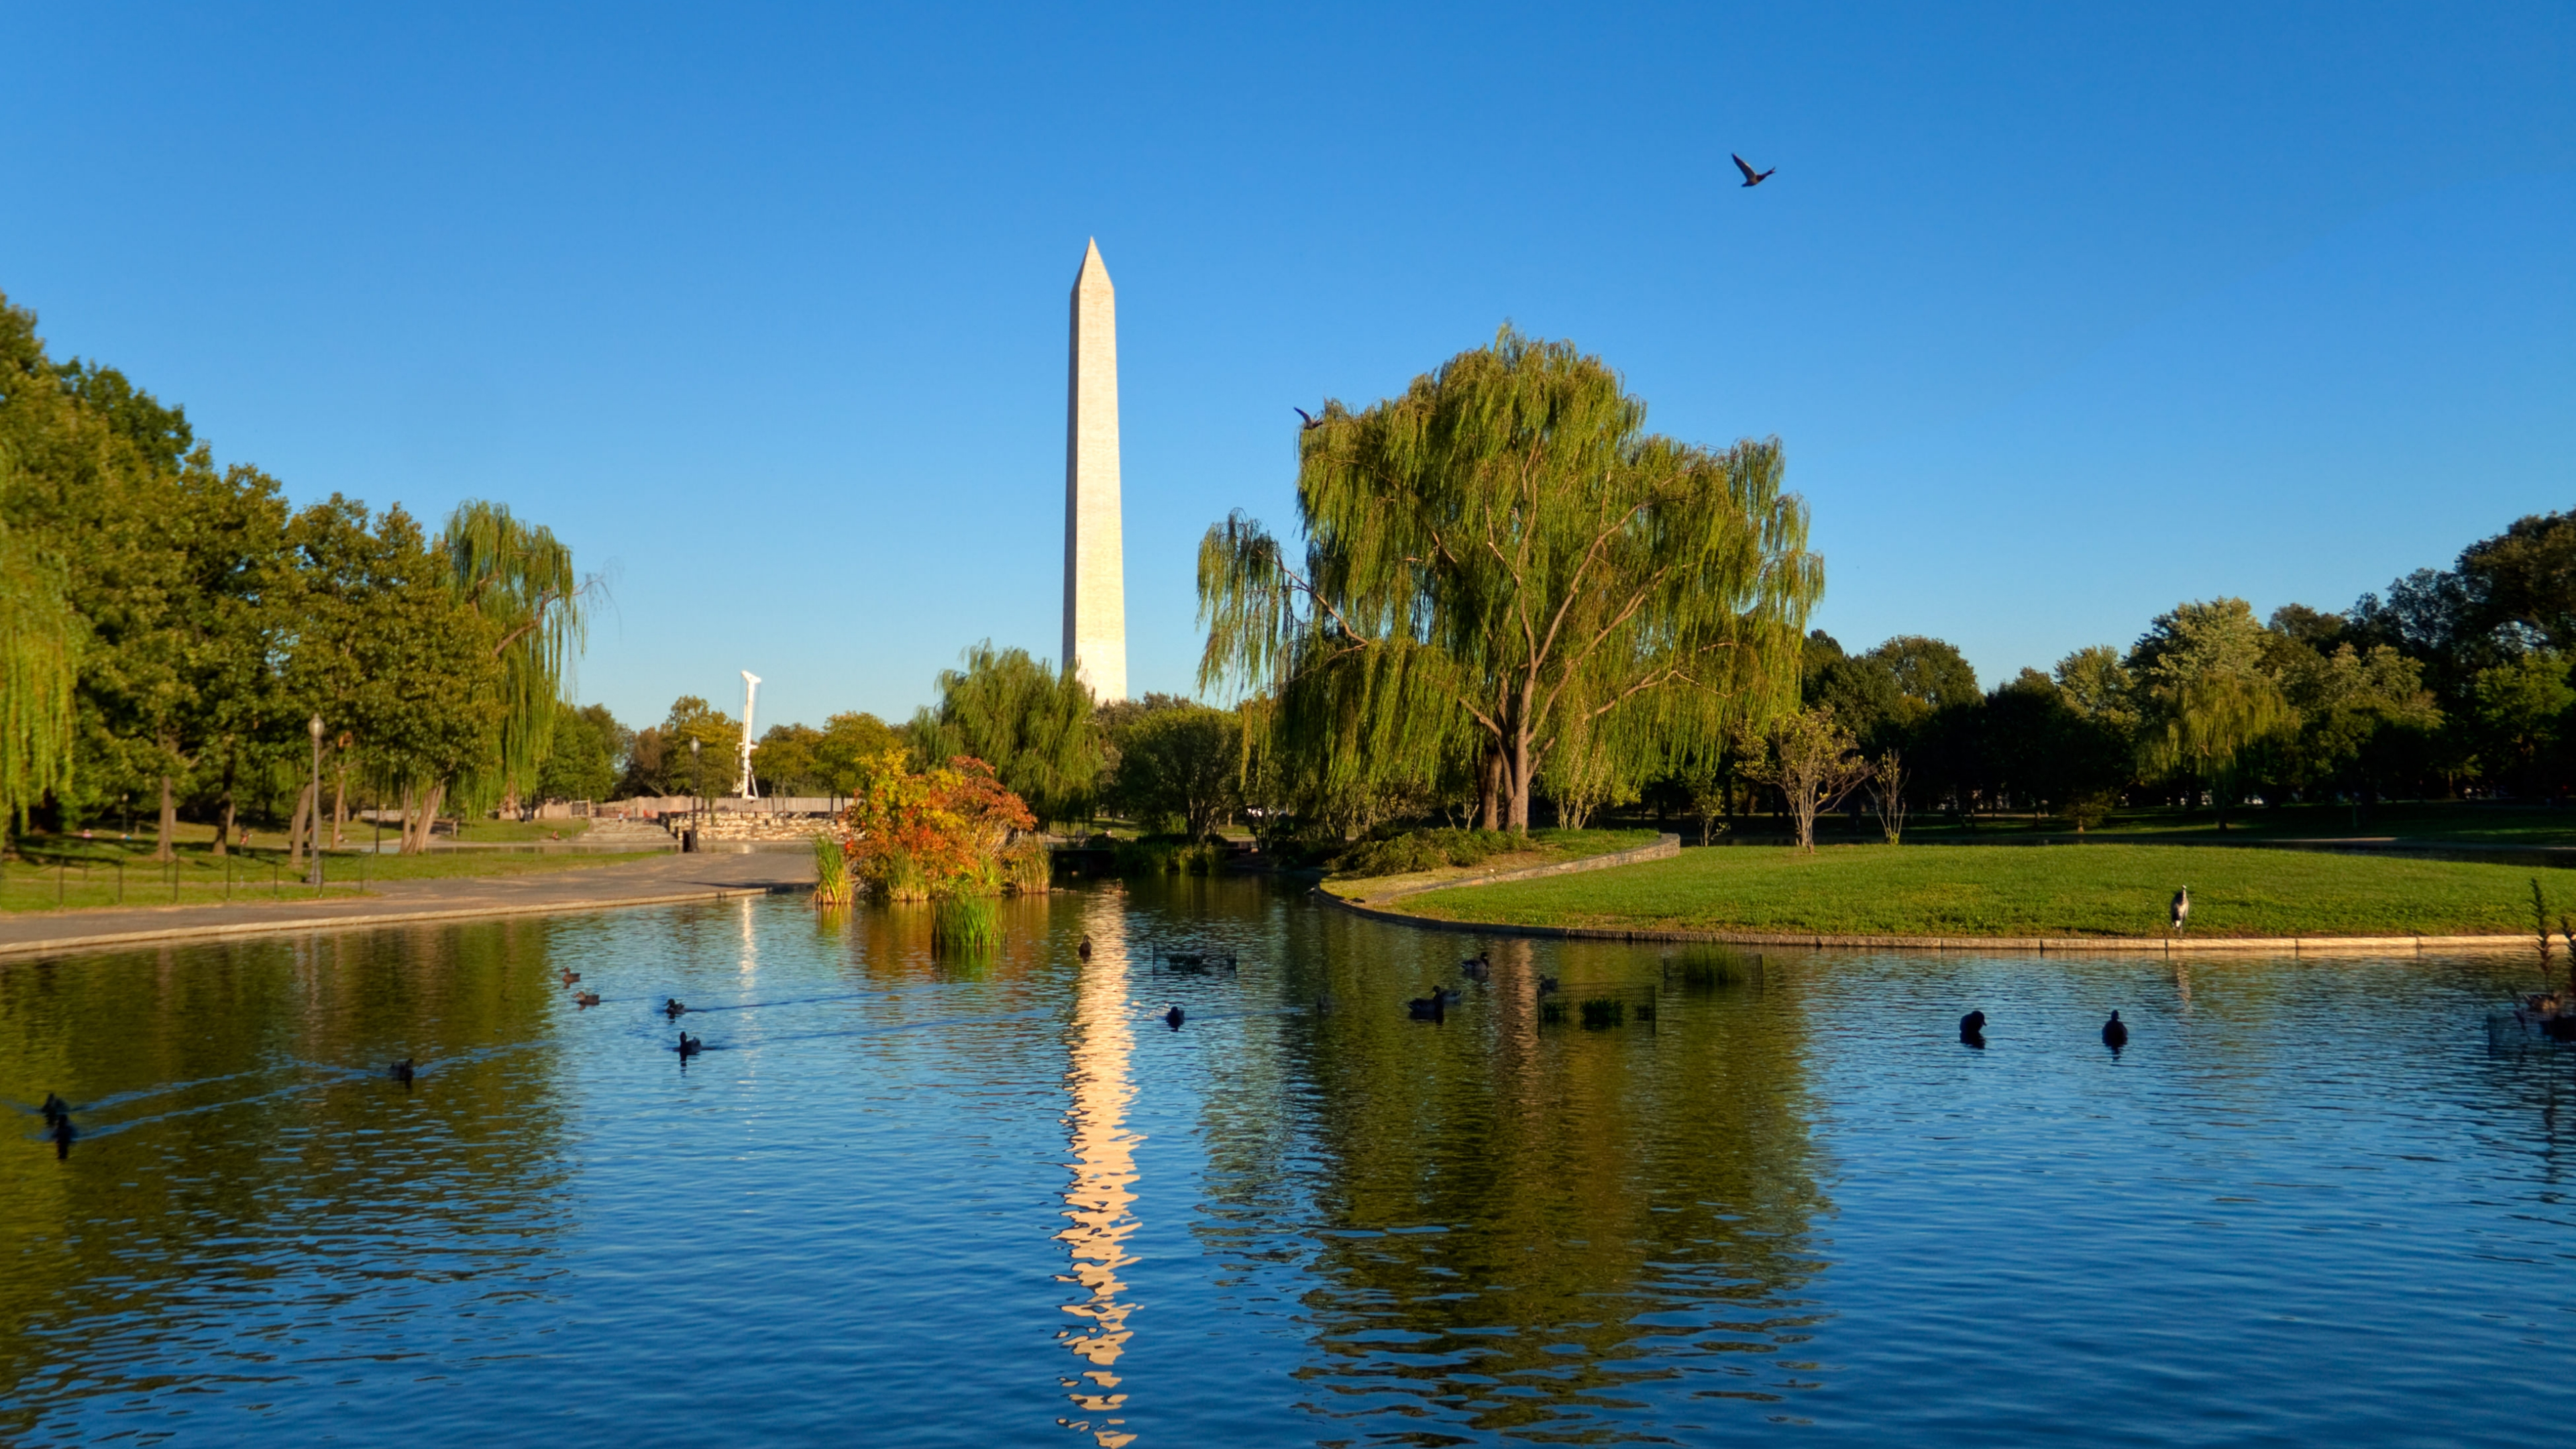 Constitution Gardens on the National Mall